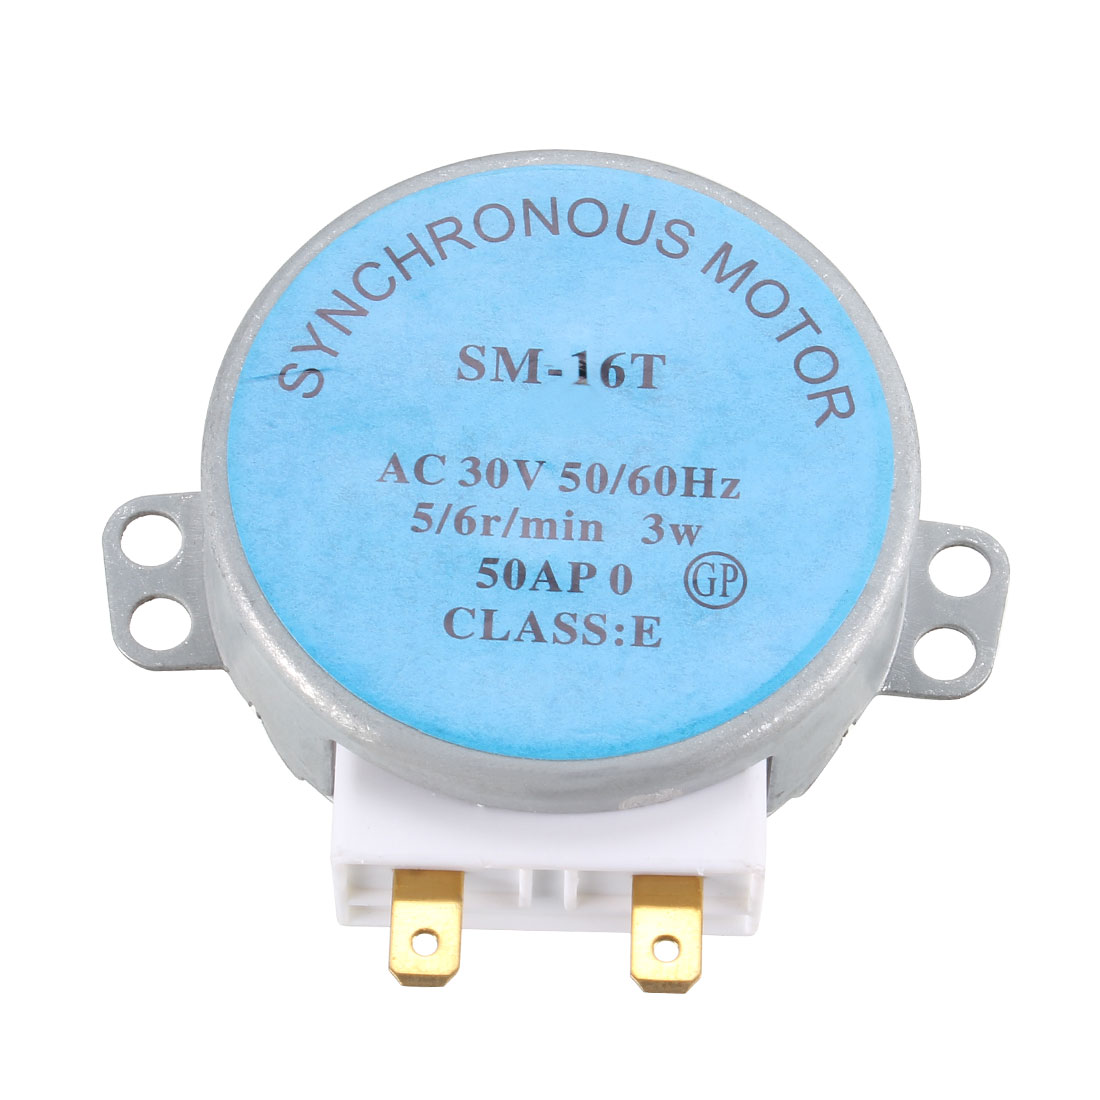 SM-16T AC 30V 3W 5/6RPM Synchronous Motor for Microwave Oven